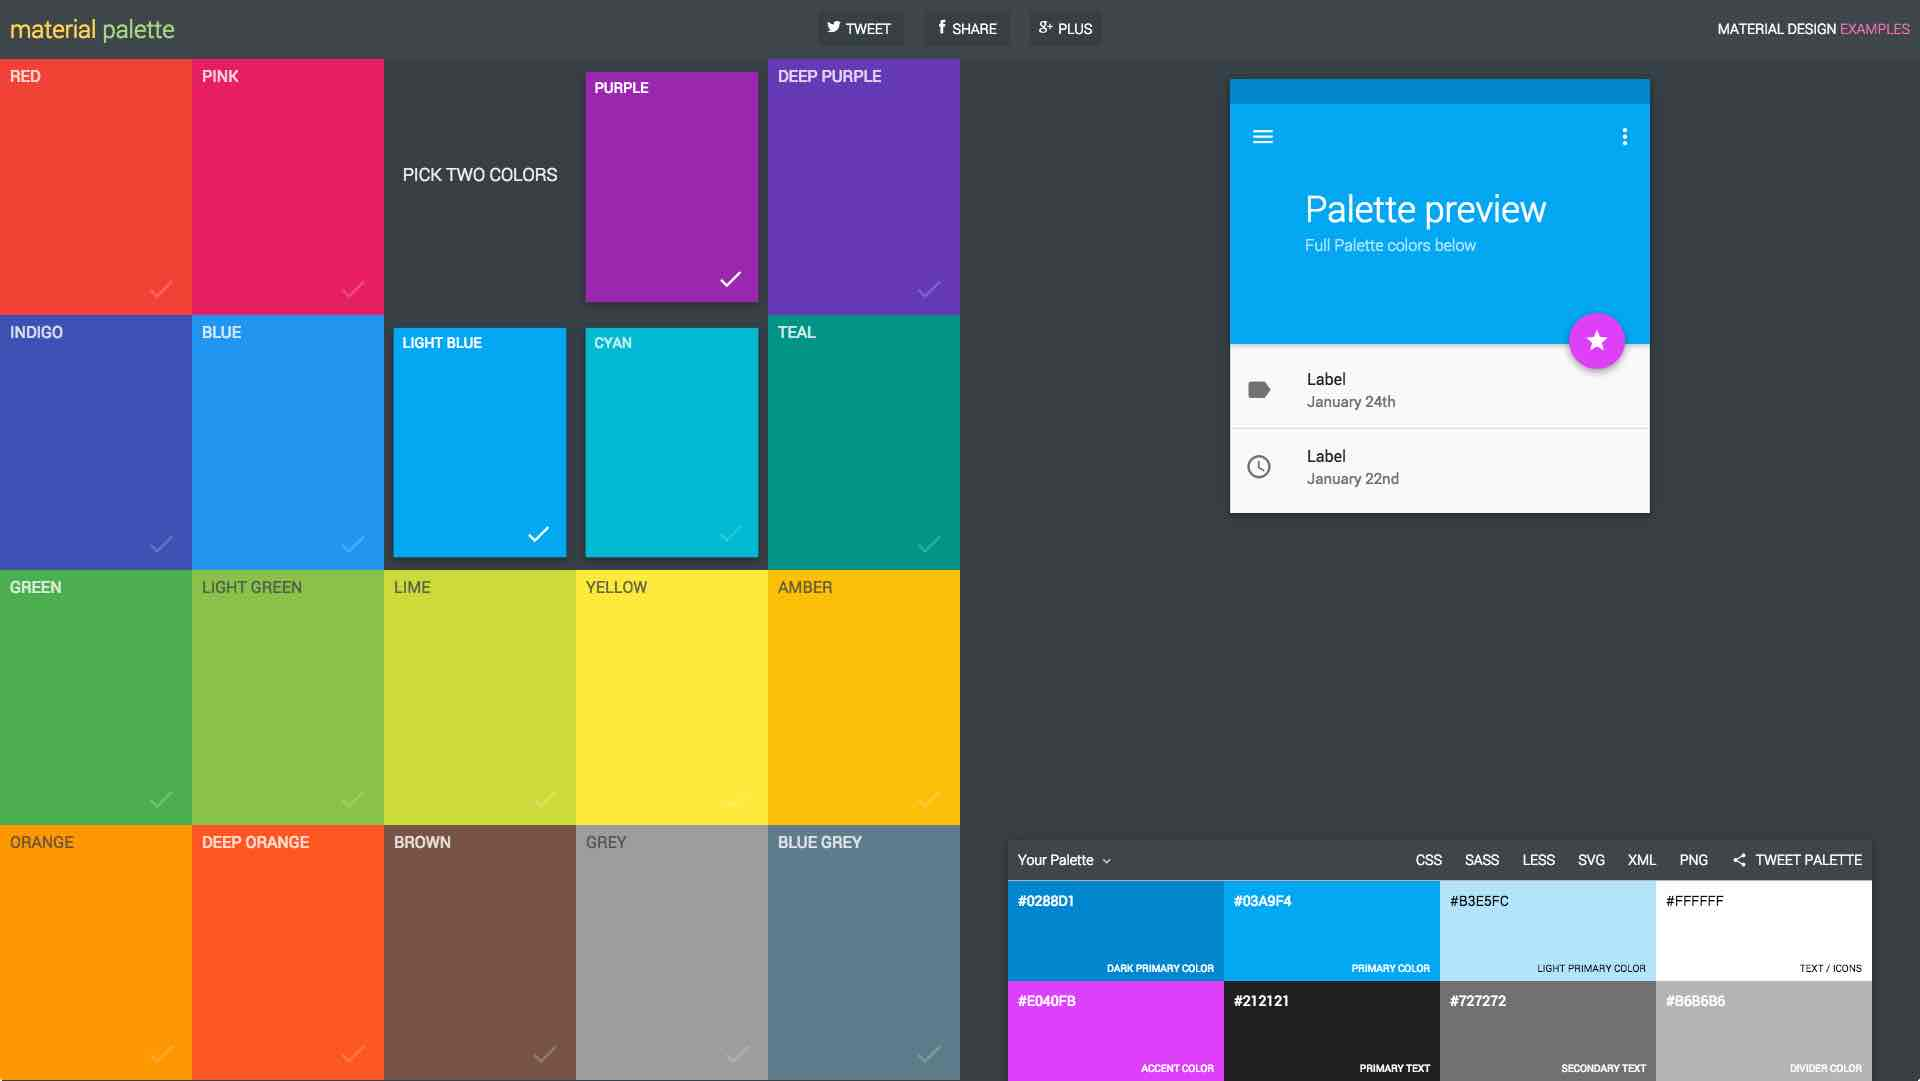 Colors from Google's Material Design